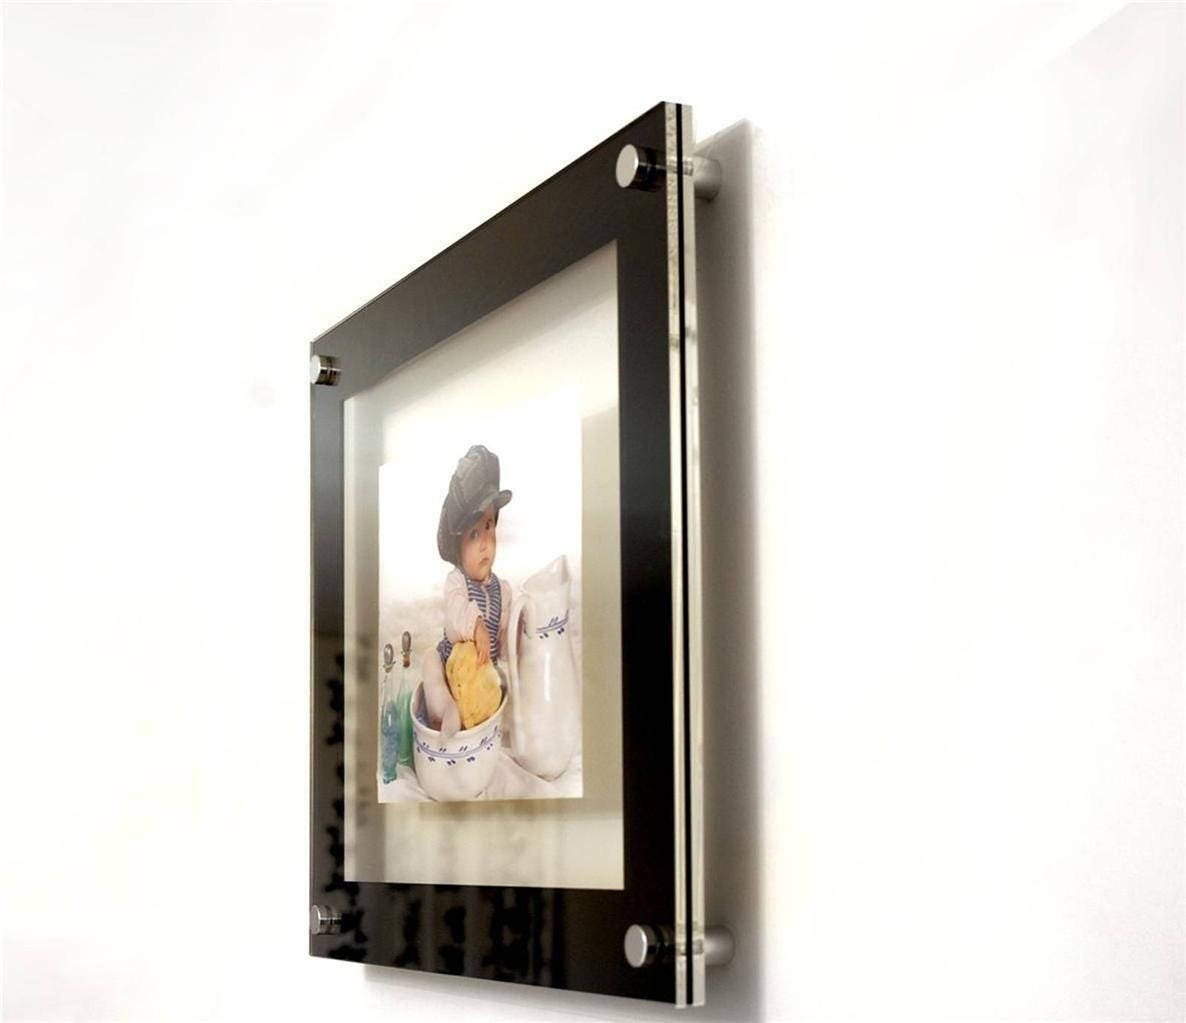 Floating 3d acrylic wall mount 10 x 8 25 x 20 cm 8 x 10 picture gallery photo gallery photo jeuxipadfo Image collections